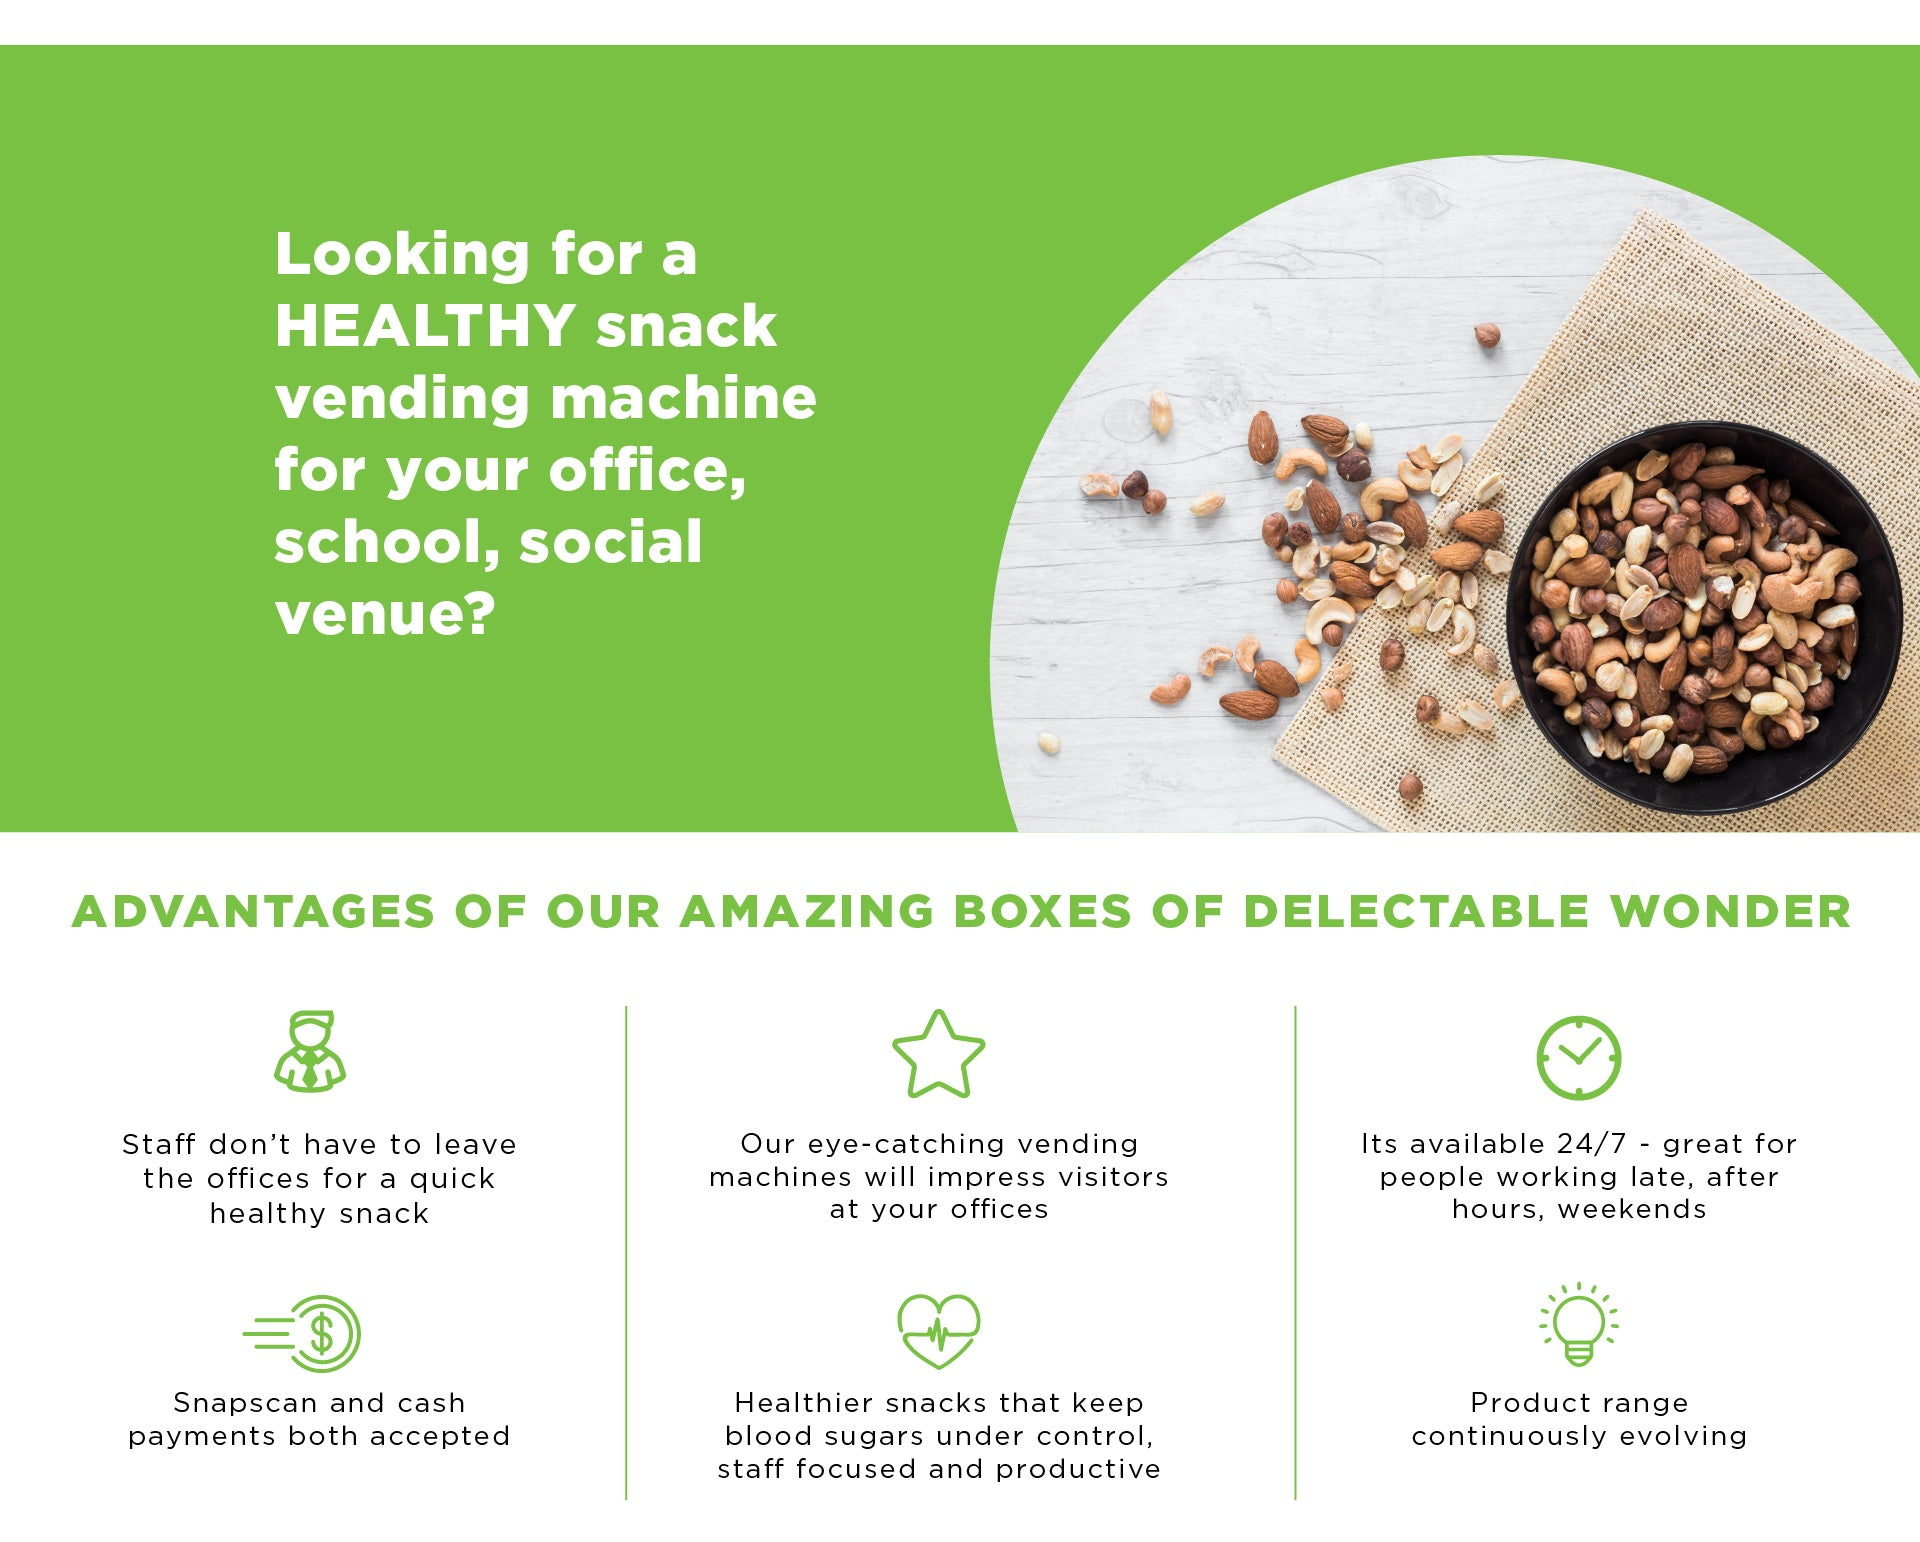 Looking for a HEALTHY snack vending machine for your office, school, social venue?